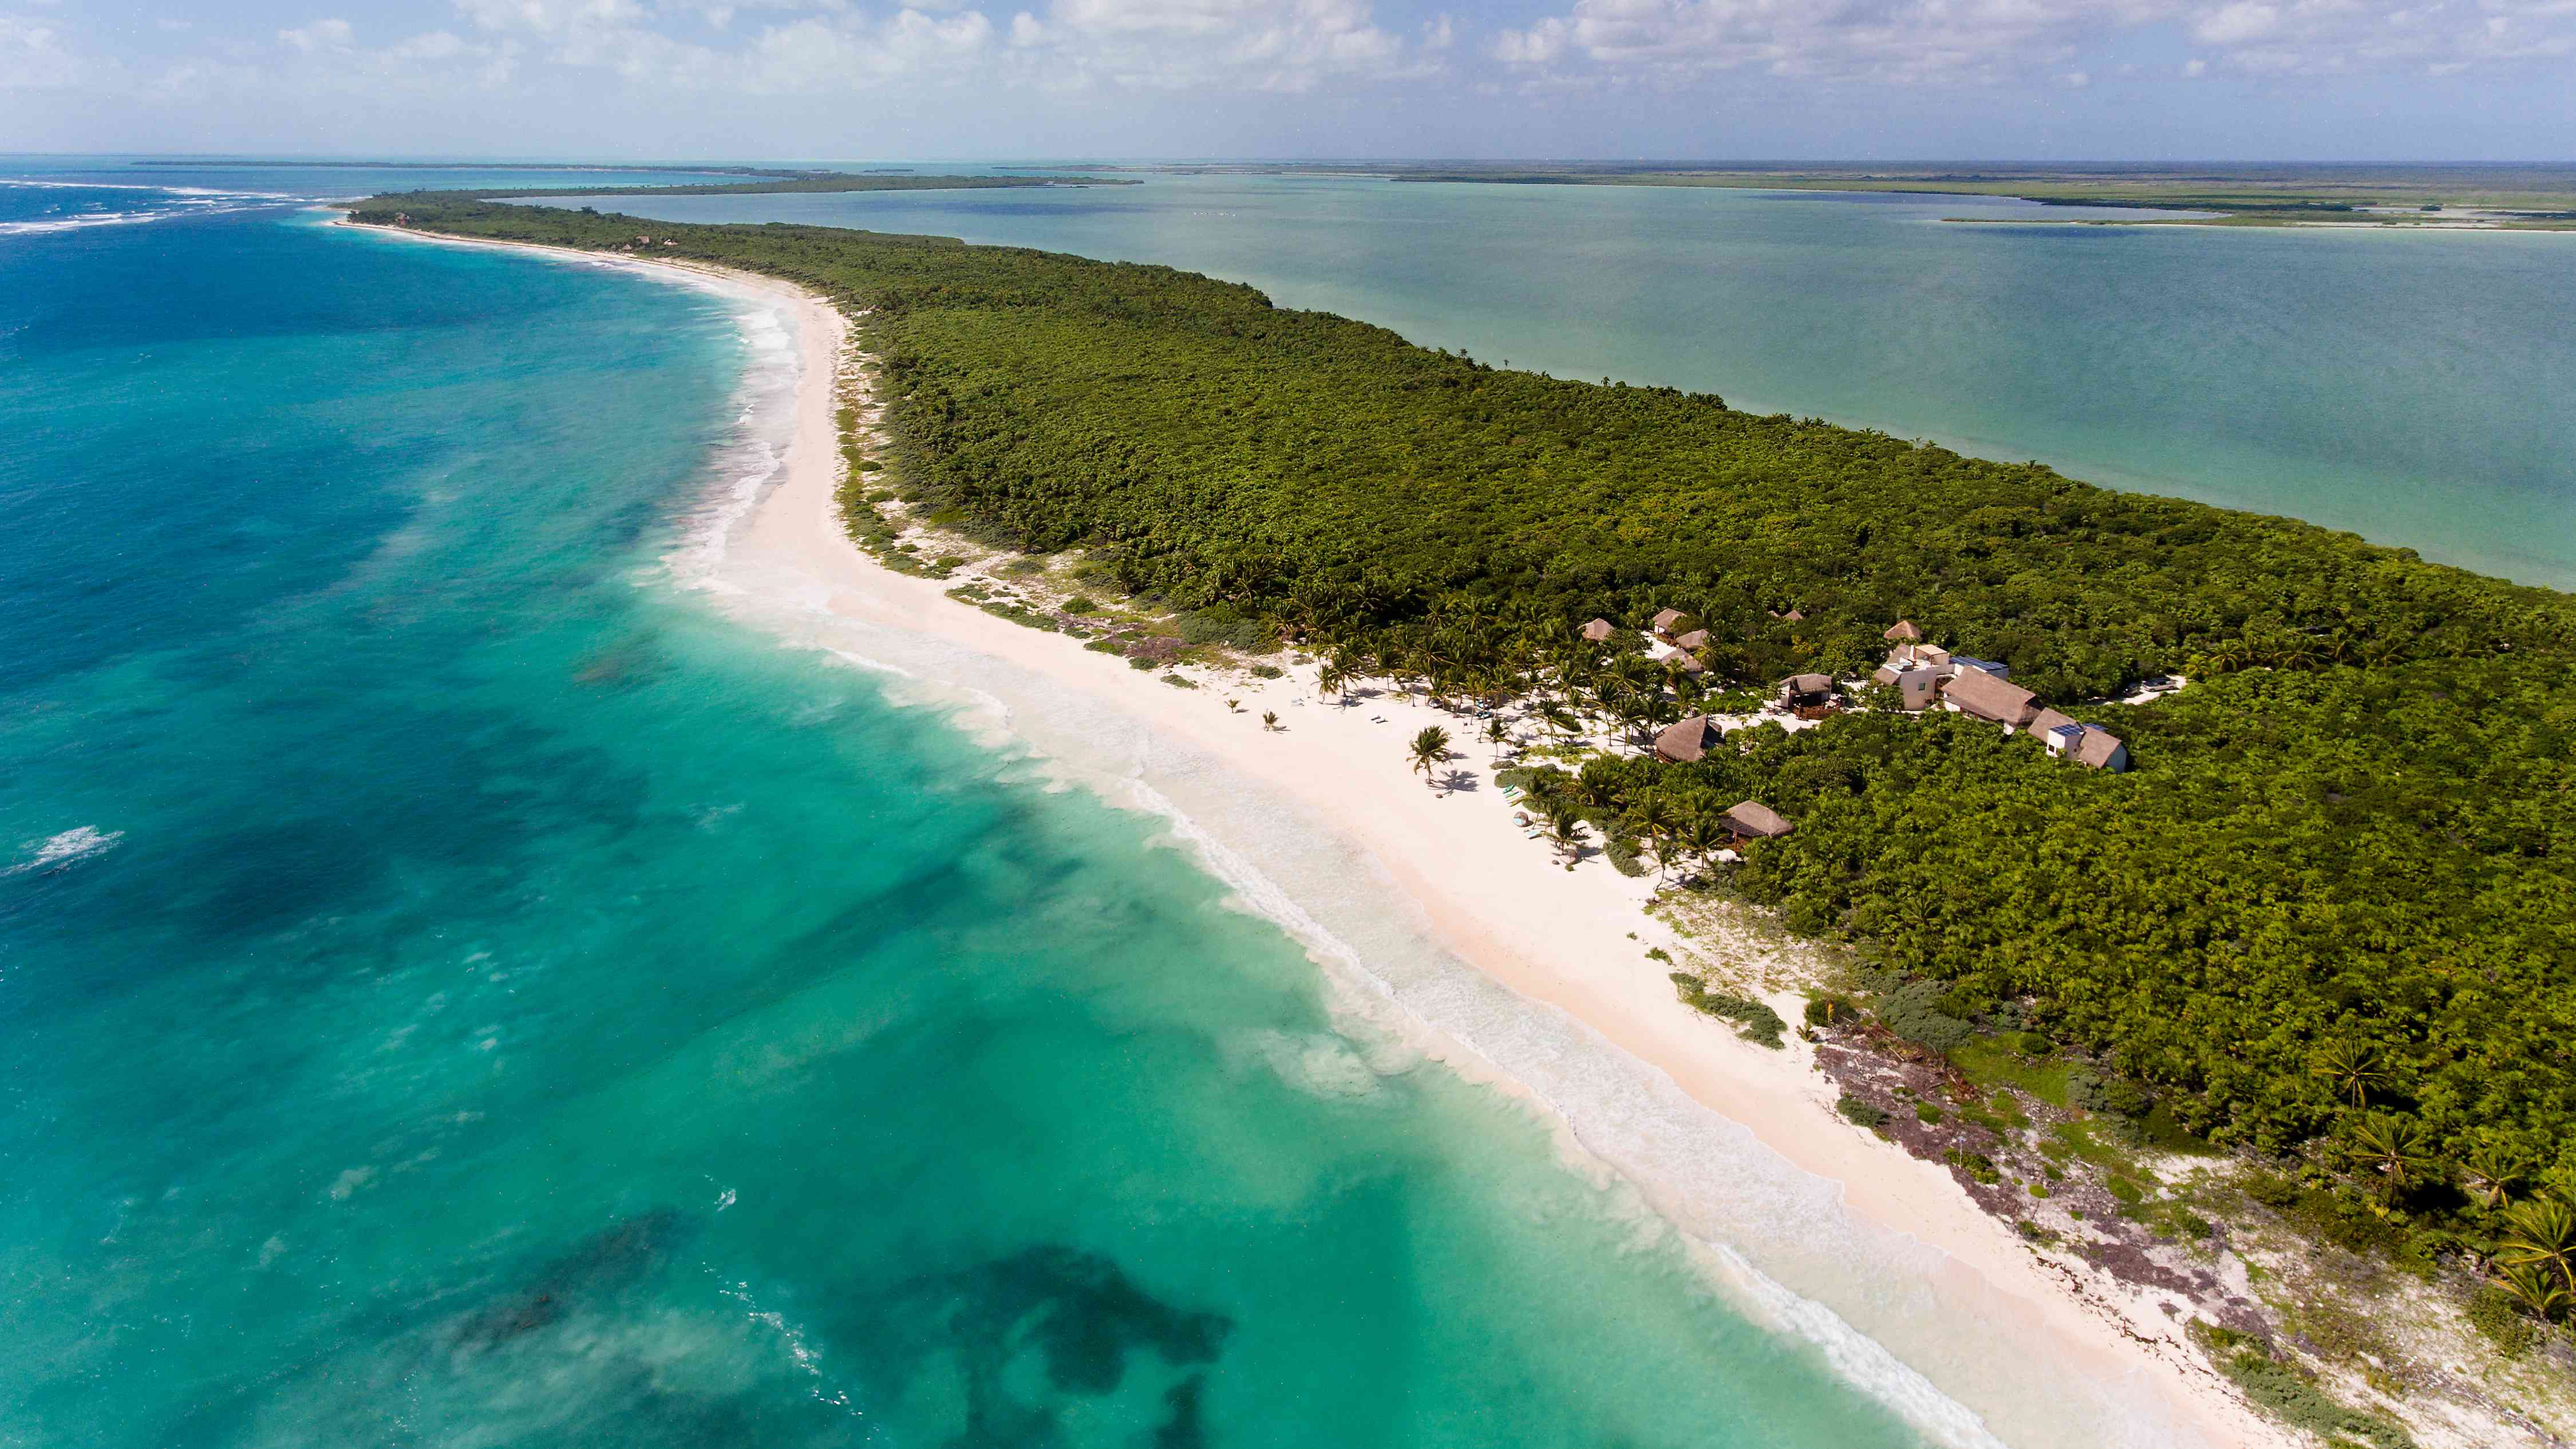 Ocean divided by sand bar with private resort